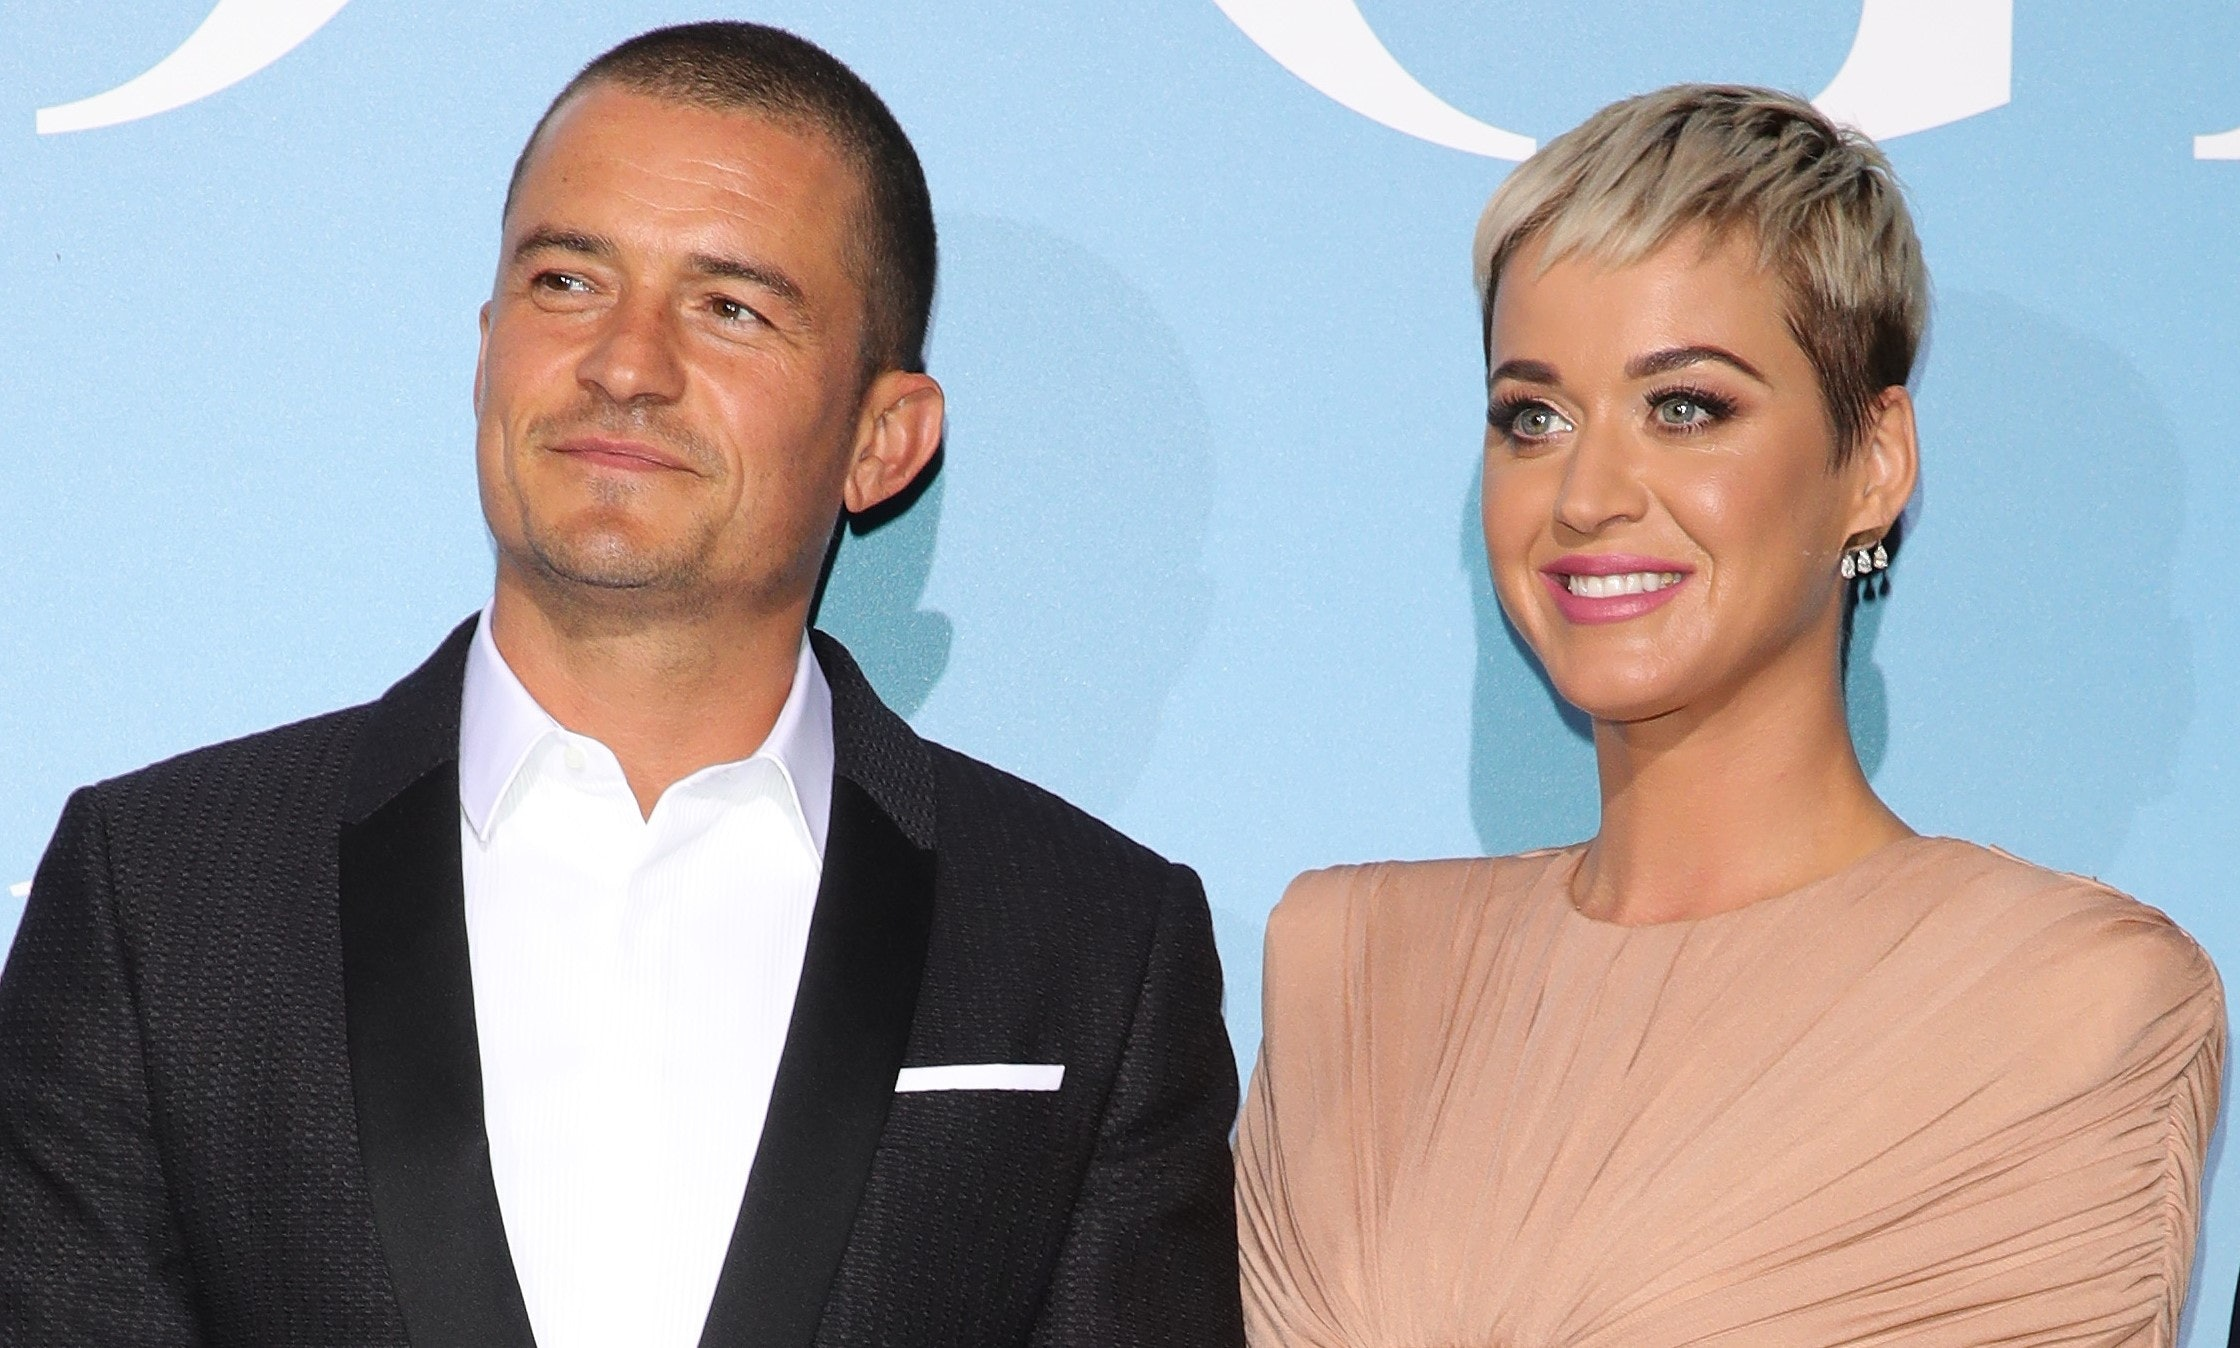 Orlando Bloom and katy perry relationship